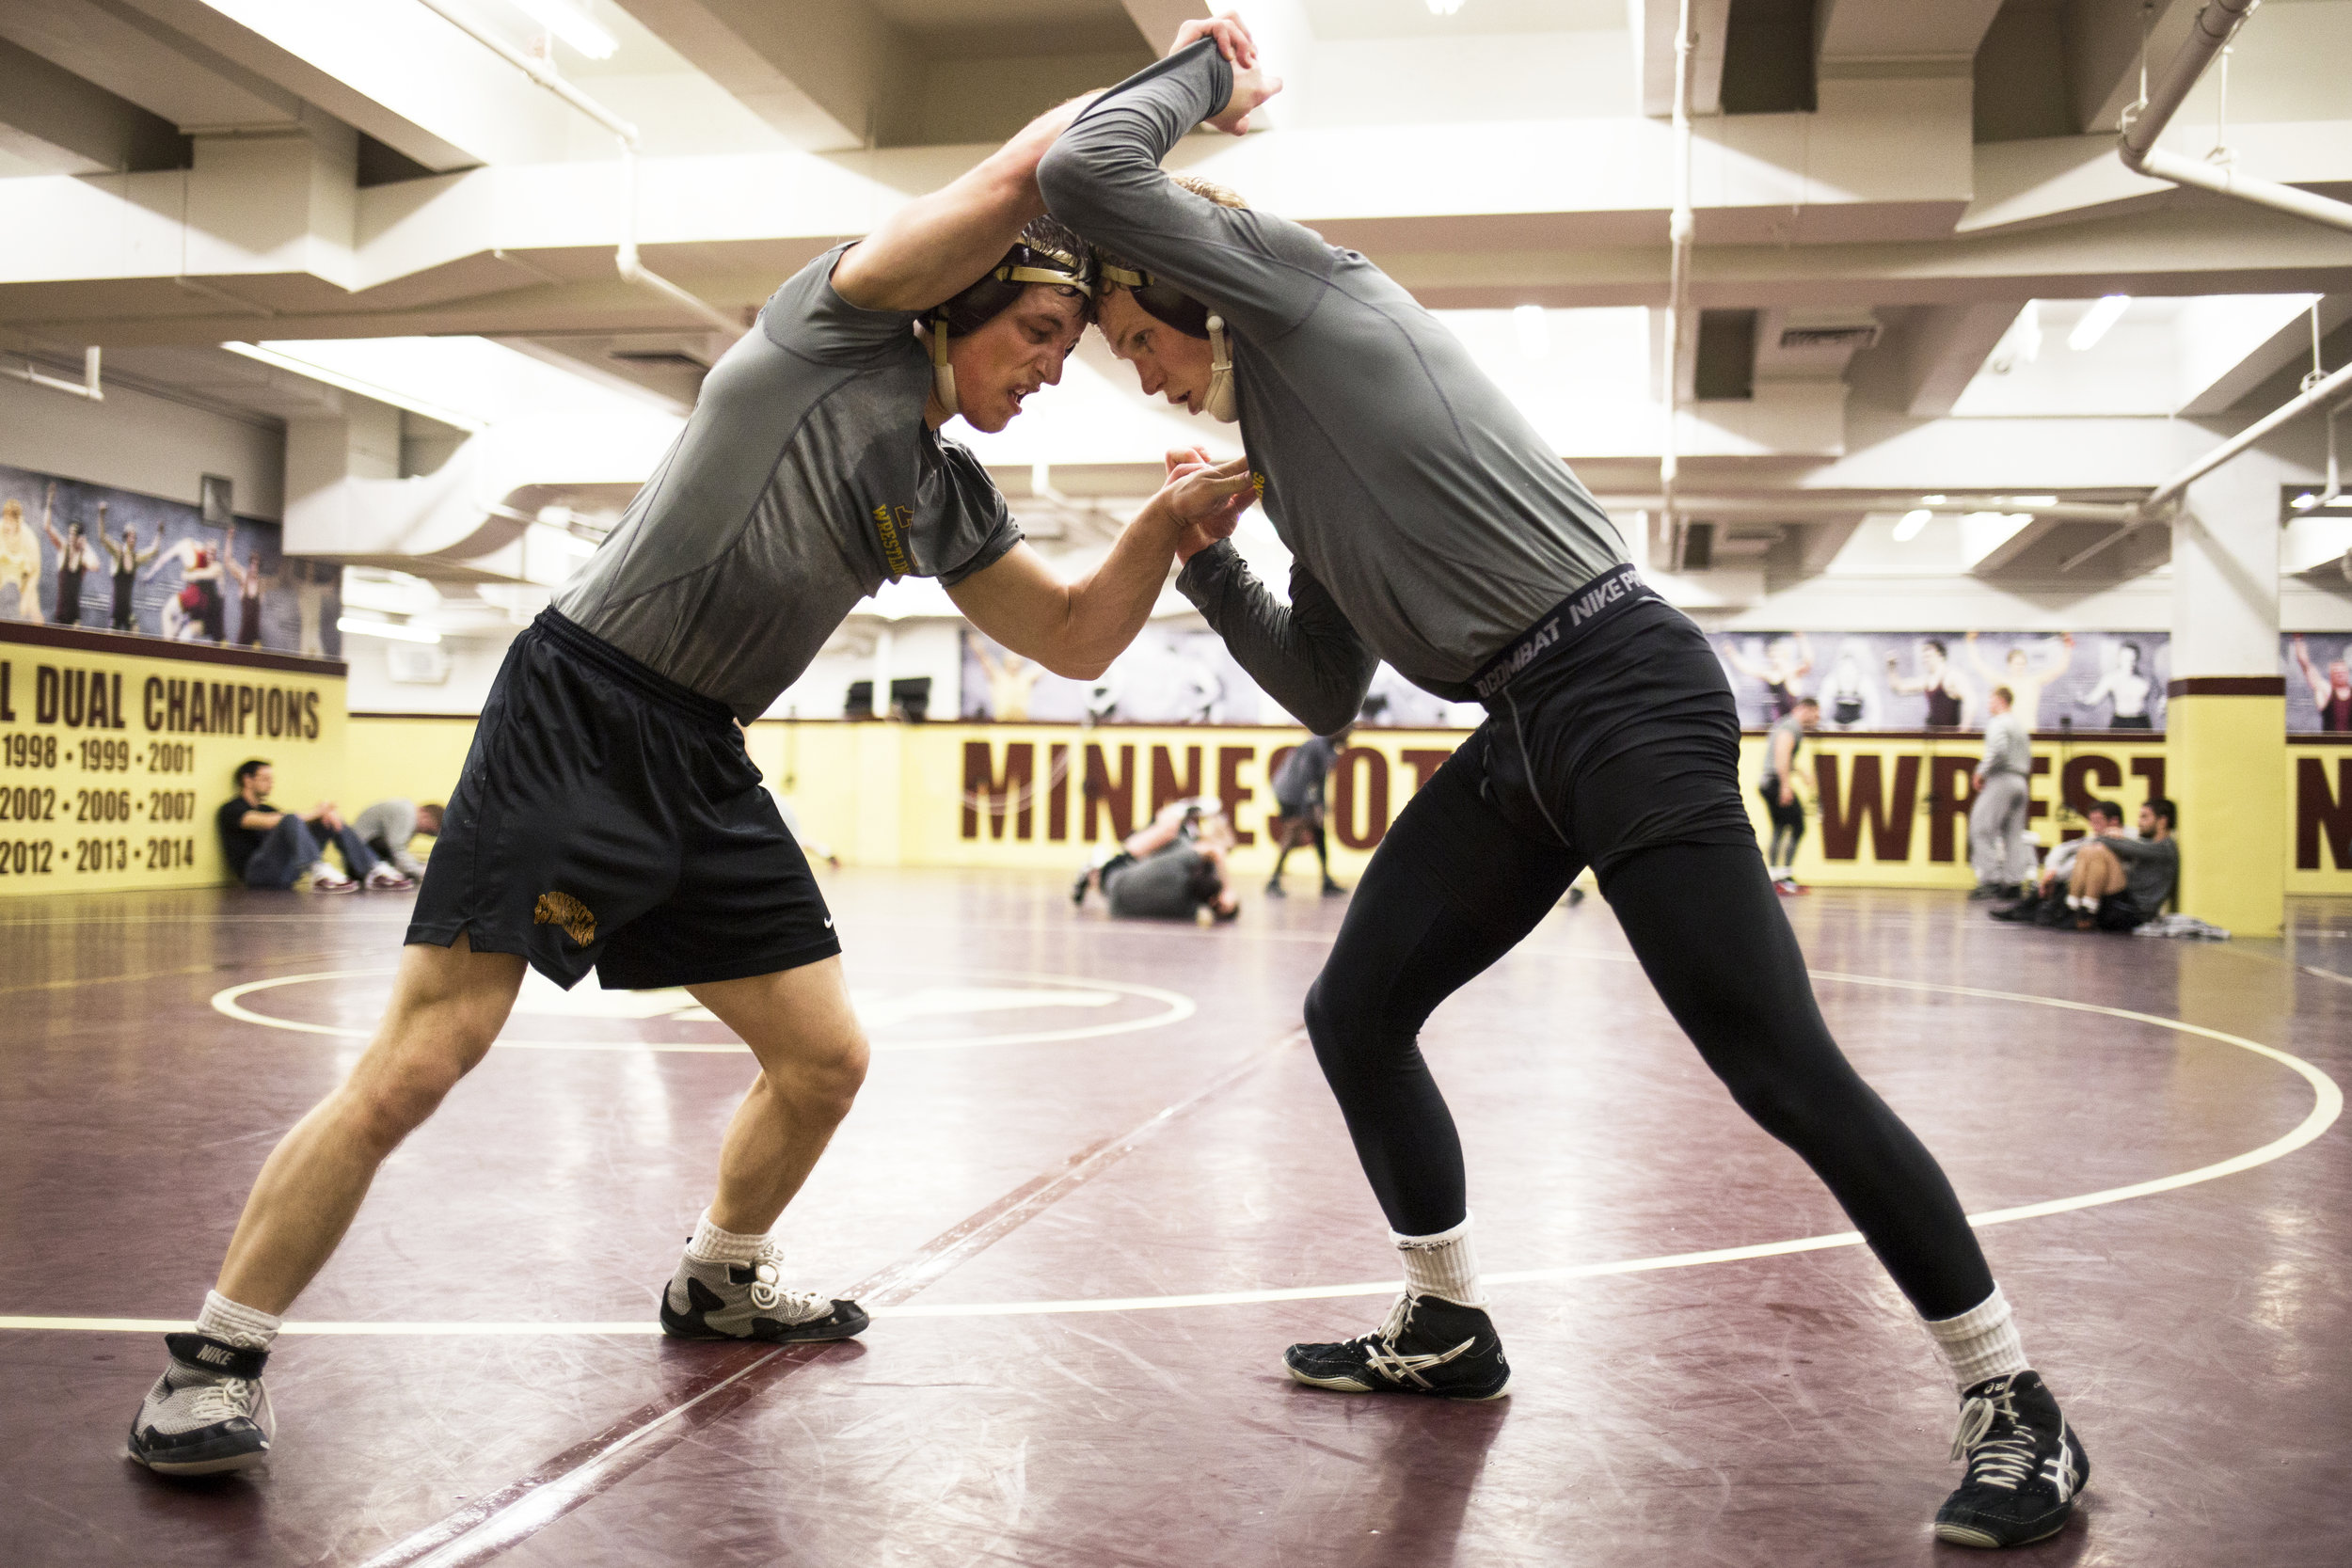 """During a post-practice sparring match, redshirt freshman Skyler Petry and junior Sam Brancale wrestle """"live"""" to emulate a real competition setting while withholding their full effort."""